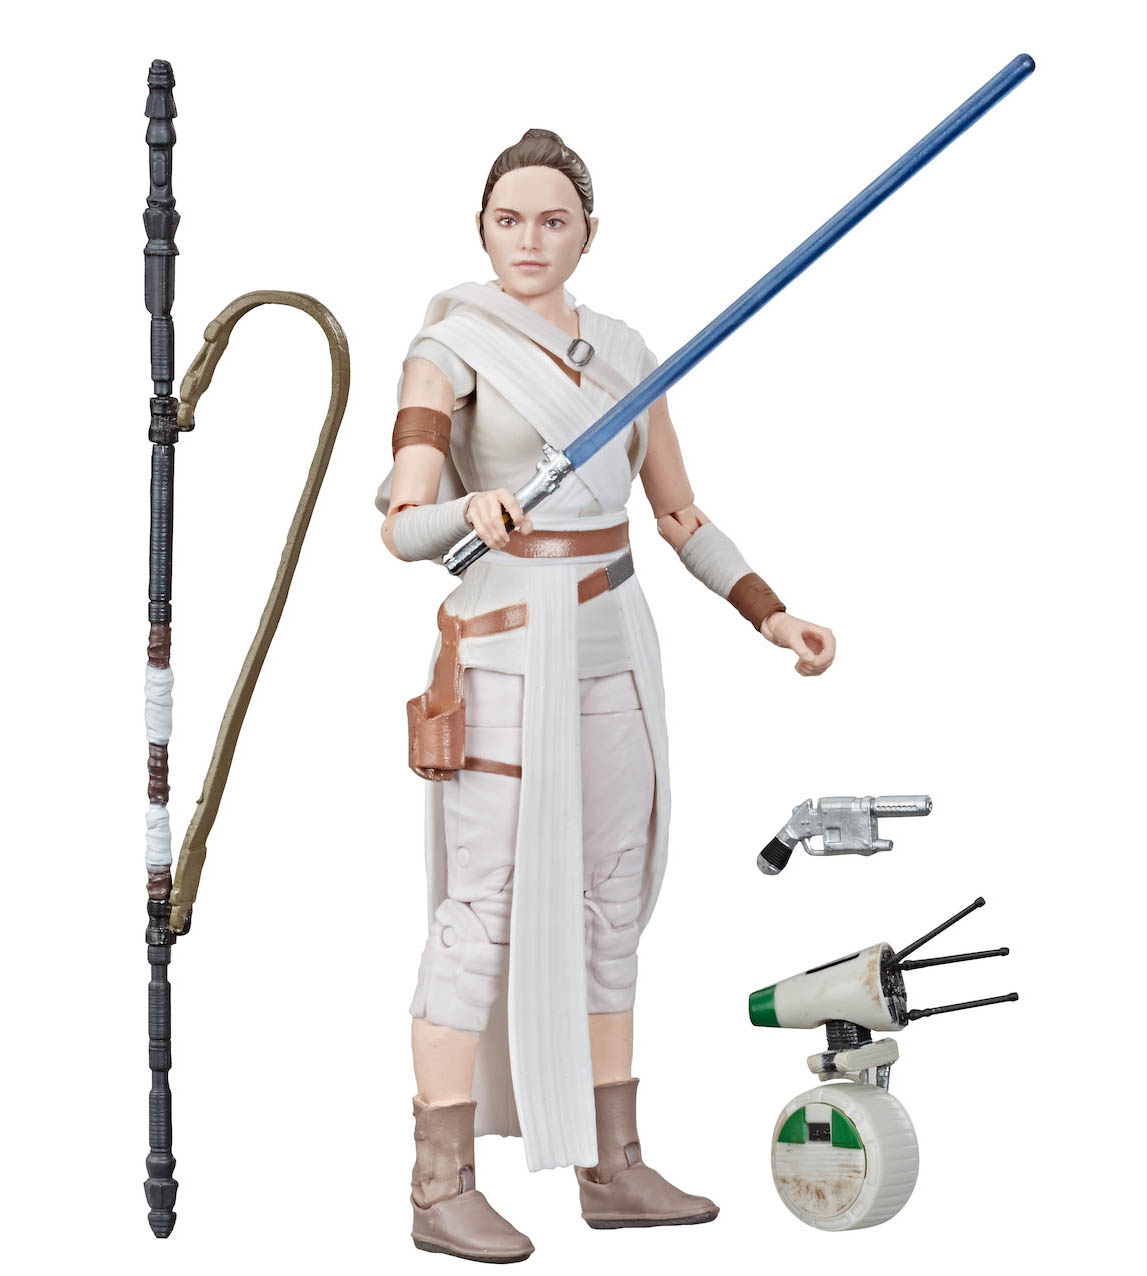 Hasbro's Black Series Rey